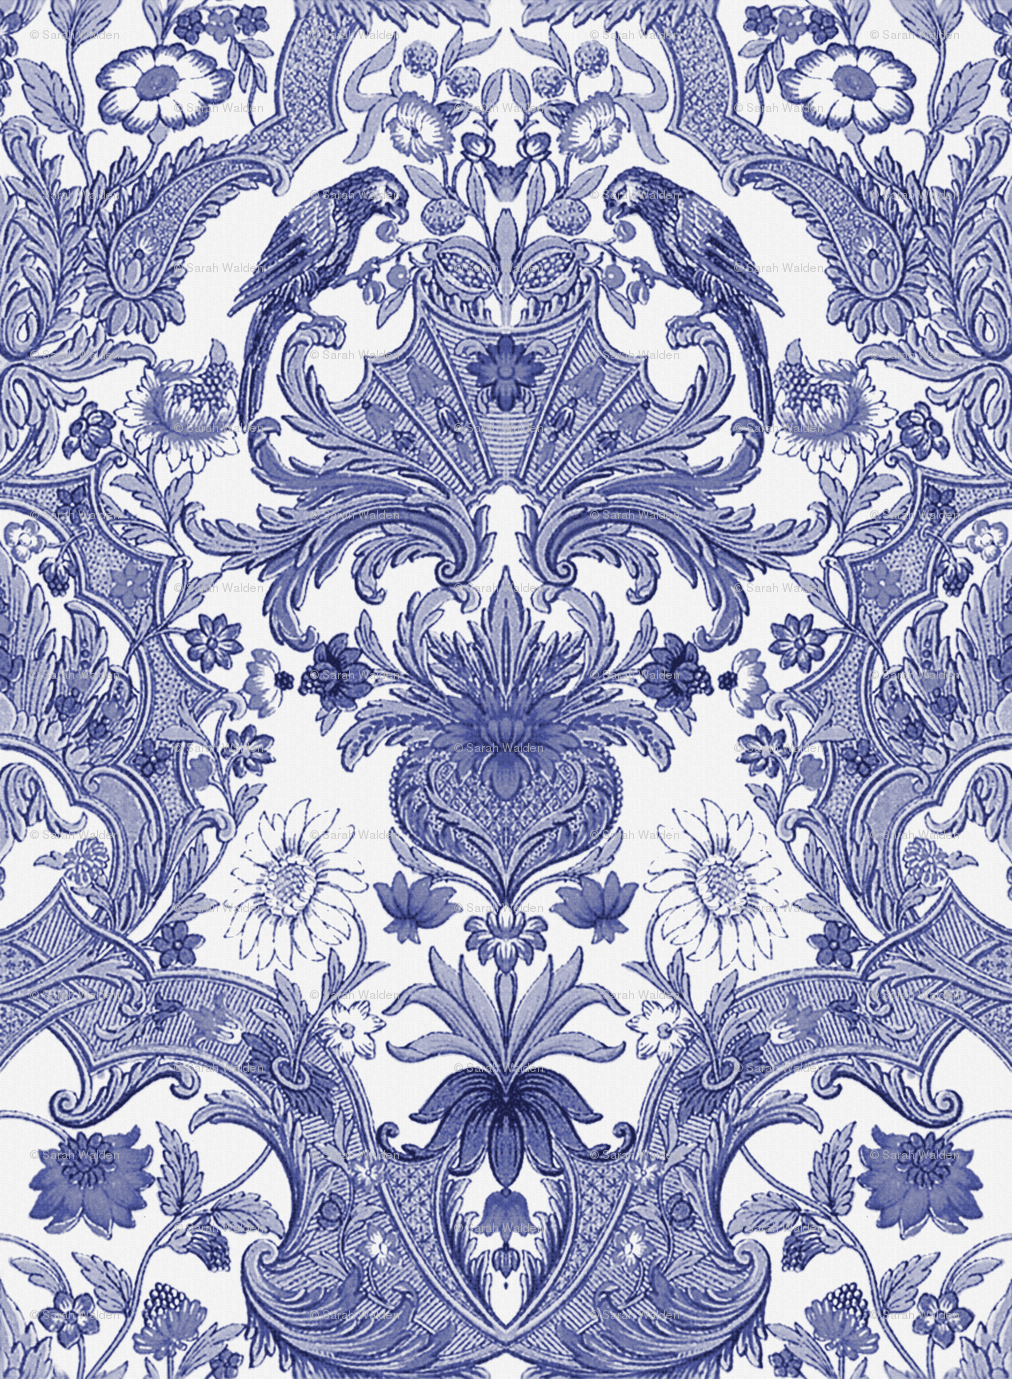 Pin by dr holly bannister on wedding fabric pinterest for Updated wallpaper designs